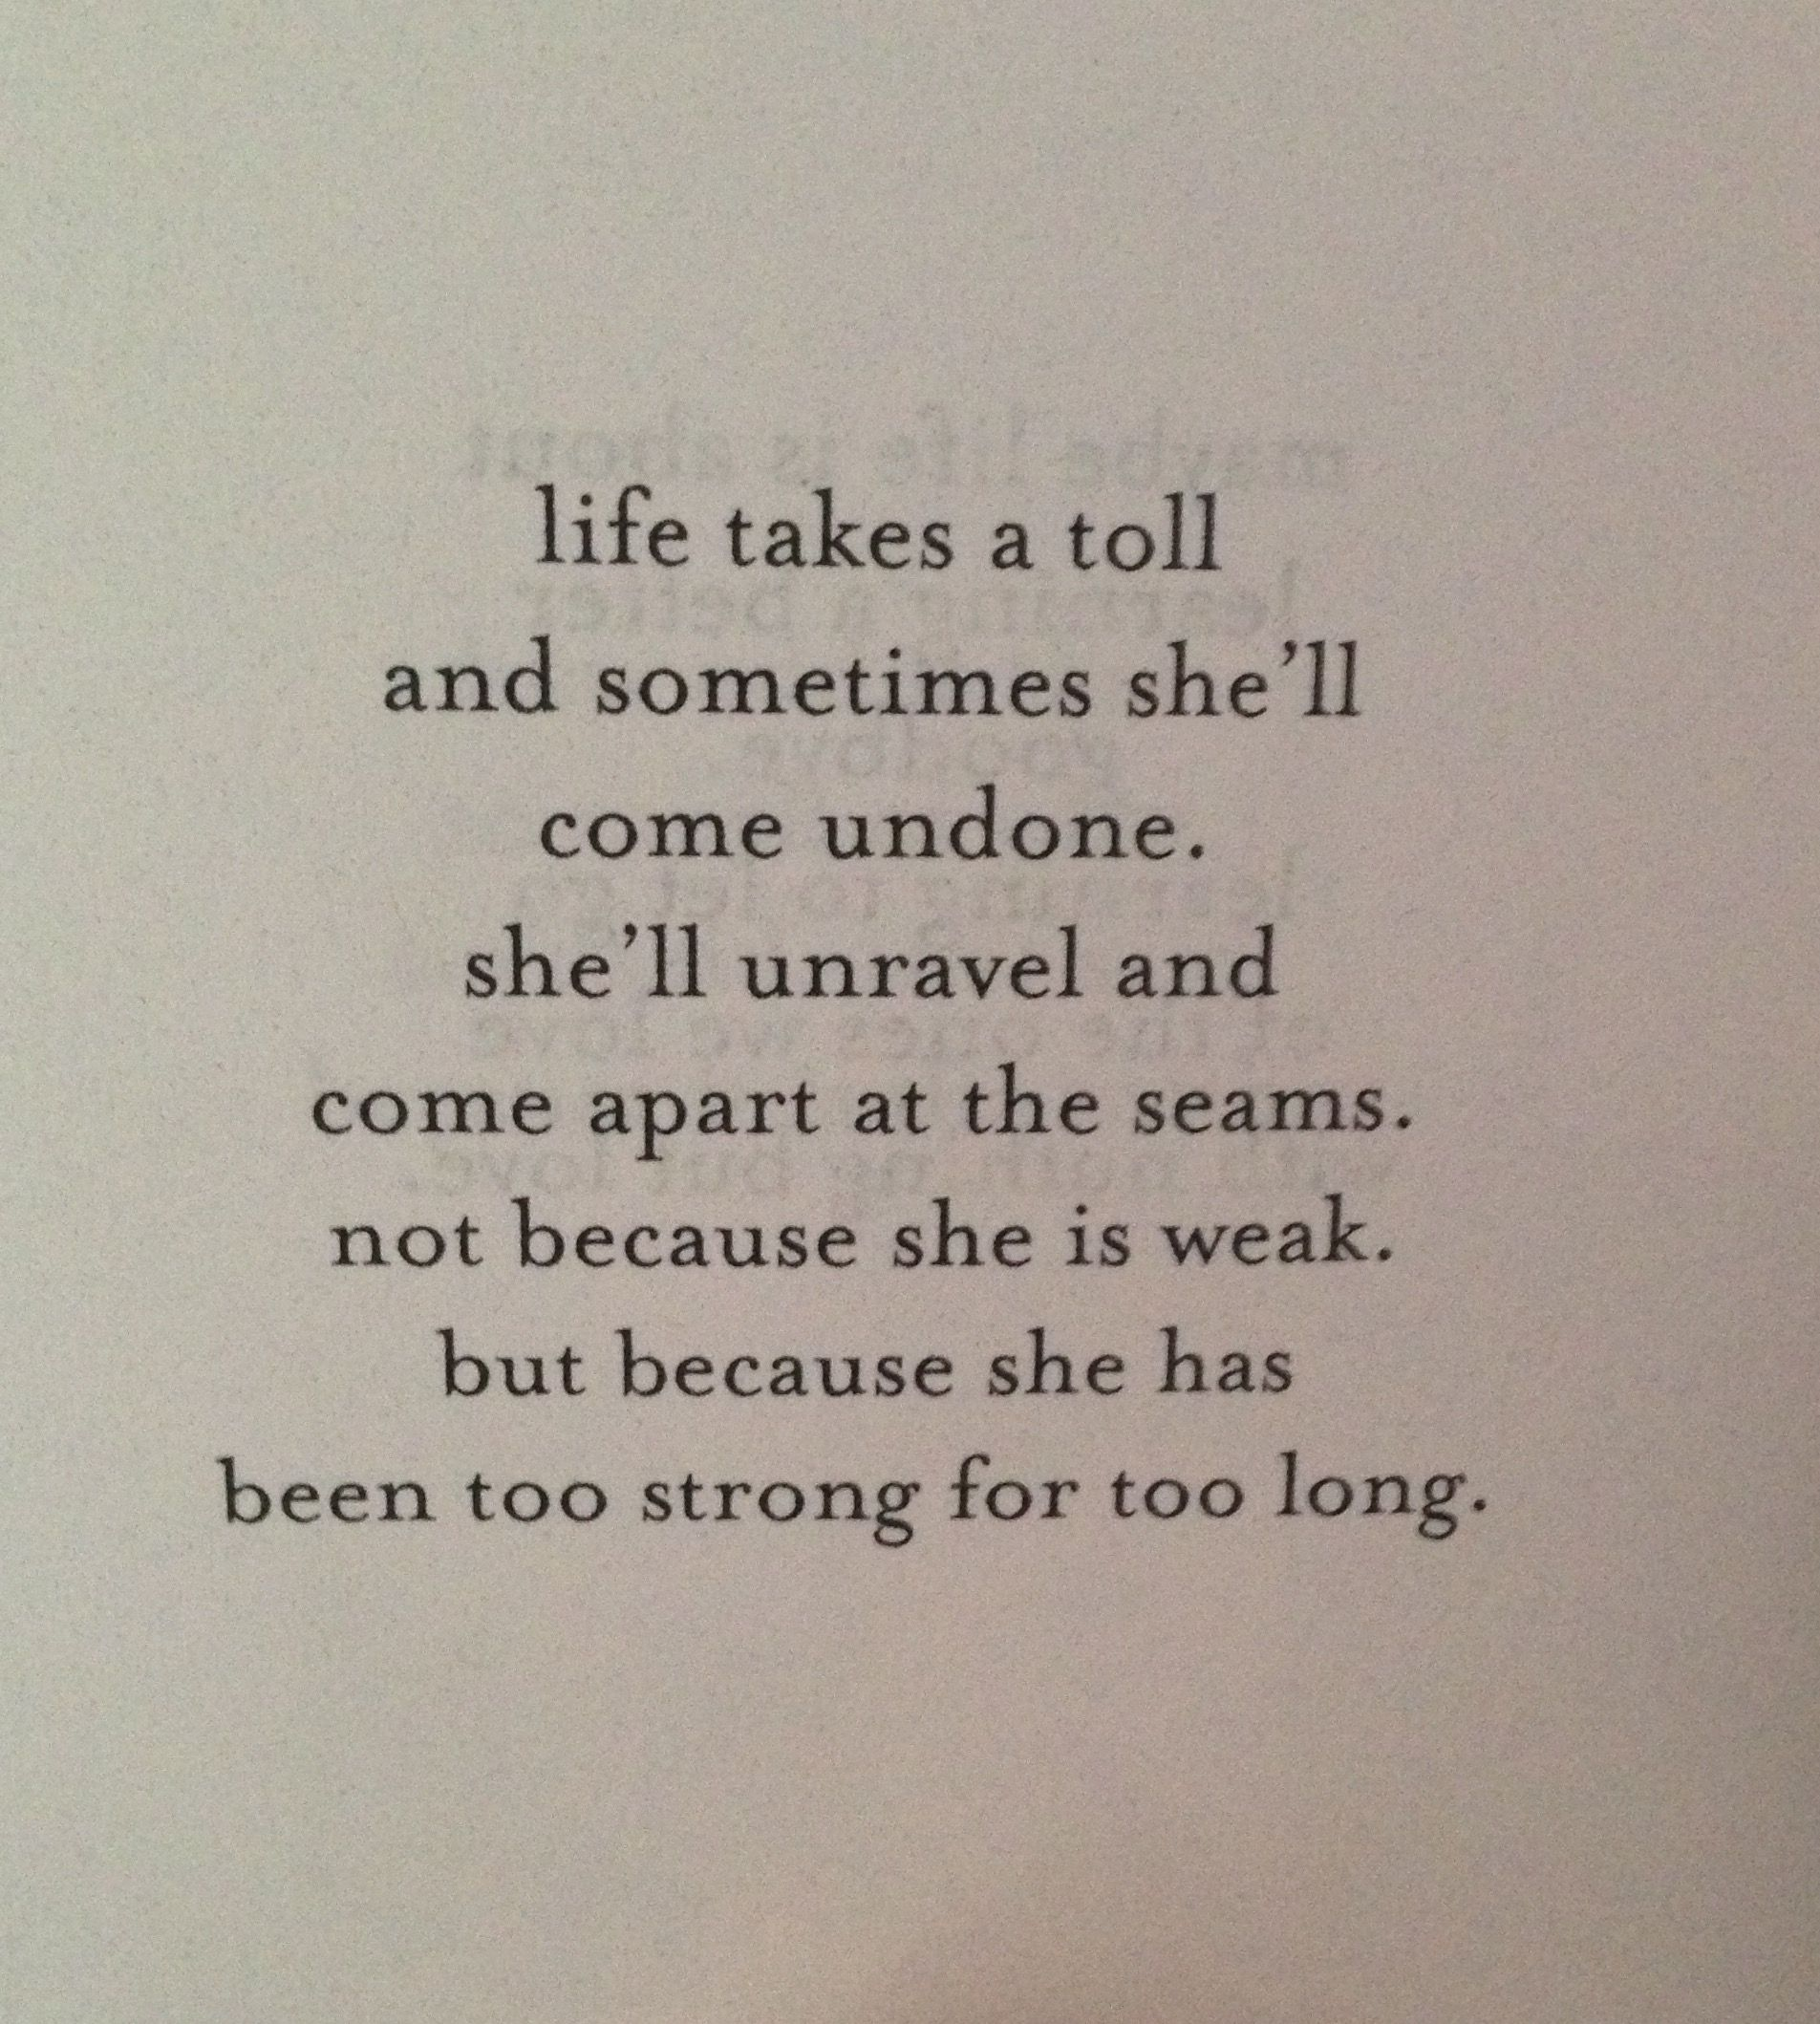 She Has Been Too Strong For Too Long Jm Storm Quotes To Live By Soul Quotes Be Yourself Quotes